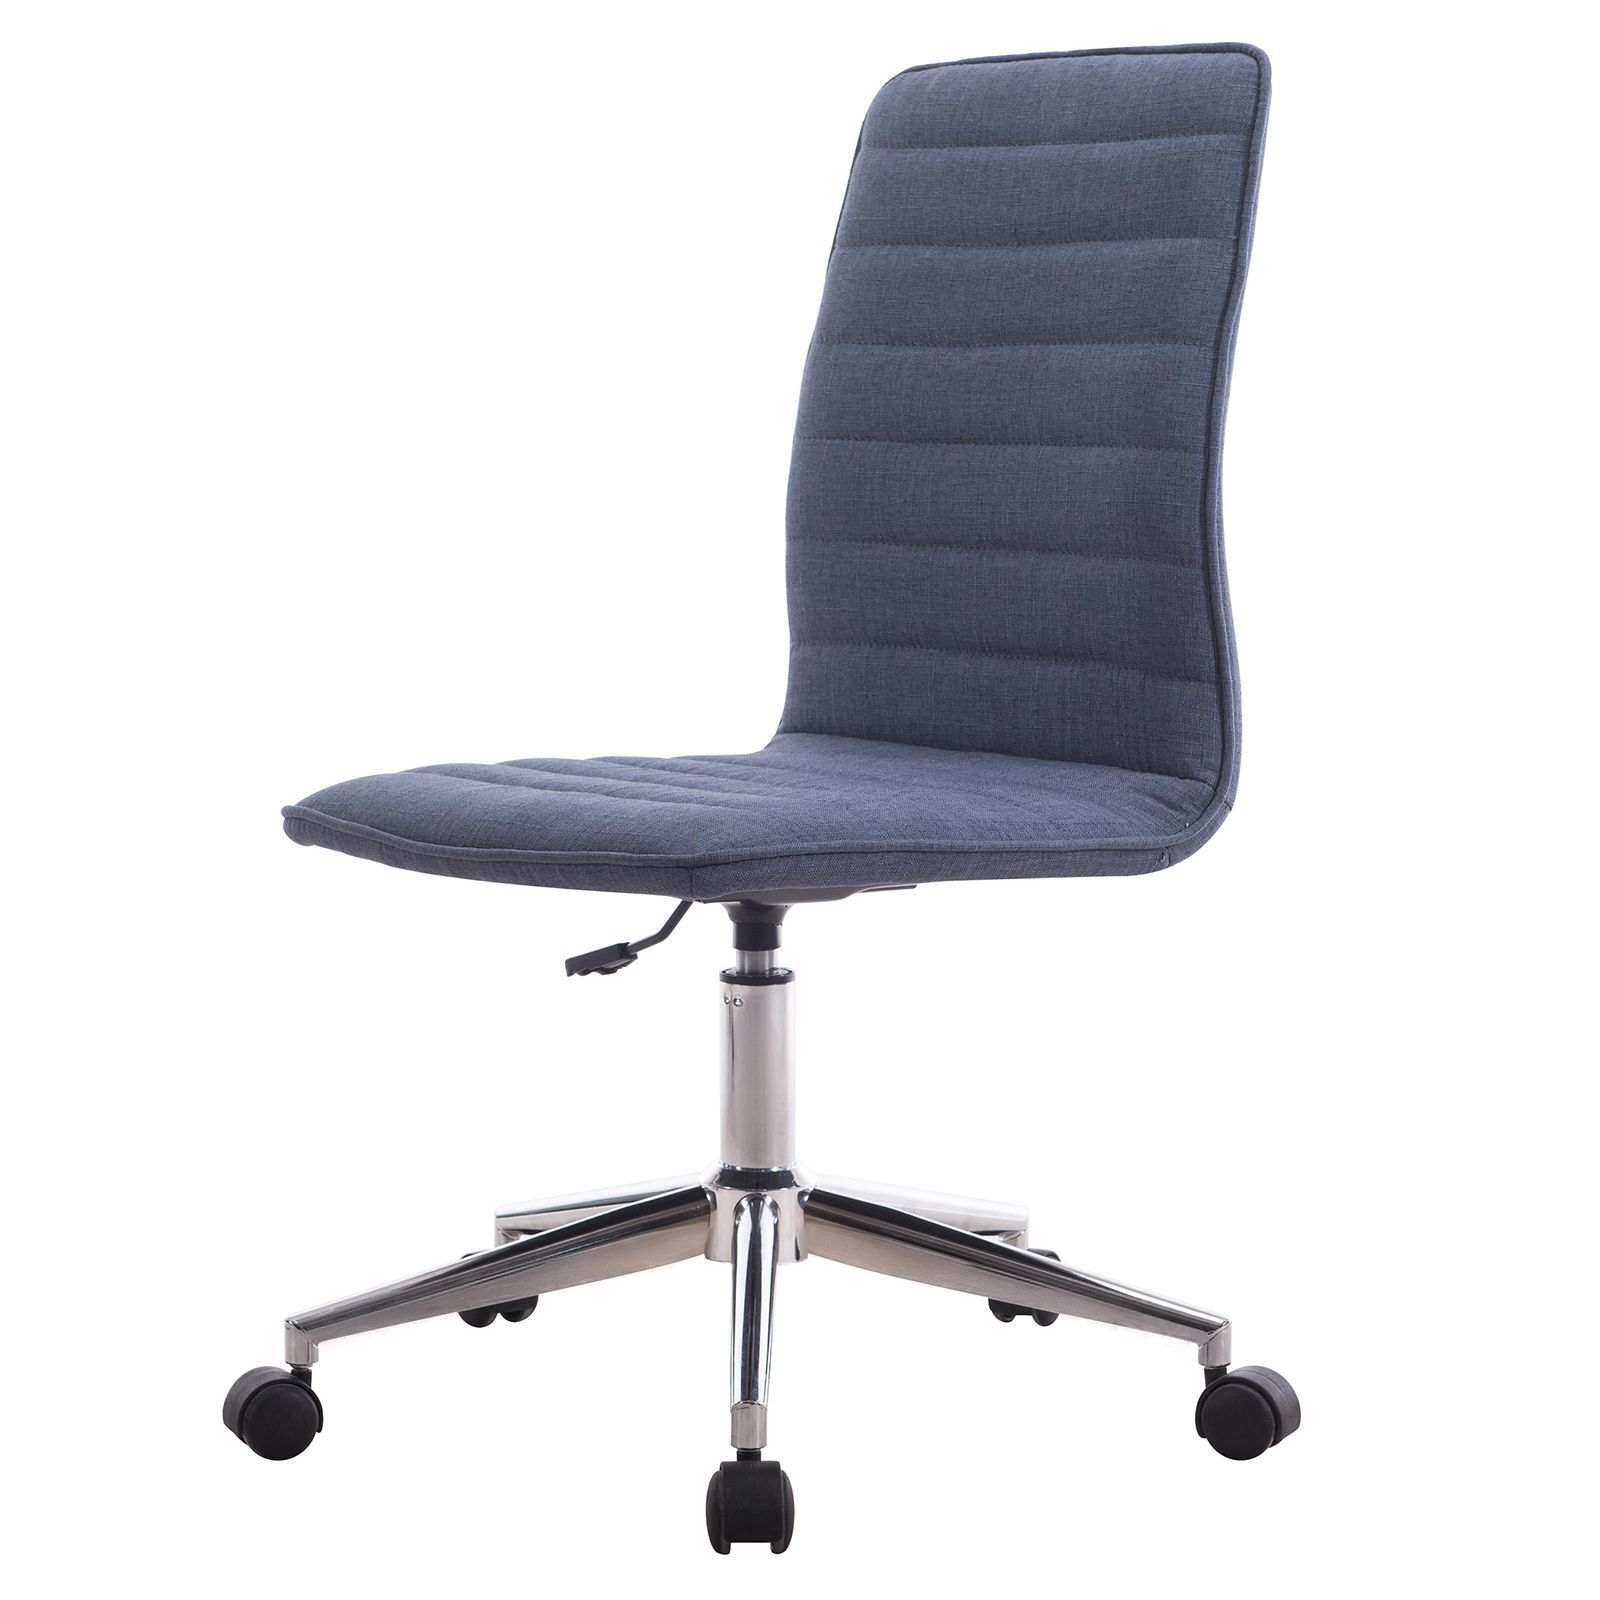 chairs in pinterest chairsblink chair prince pin conference armless products room office